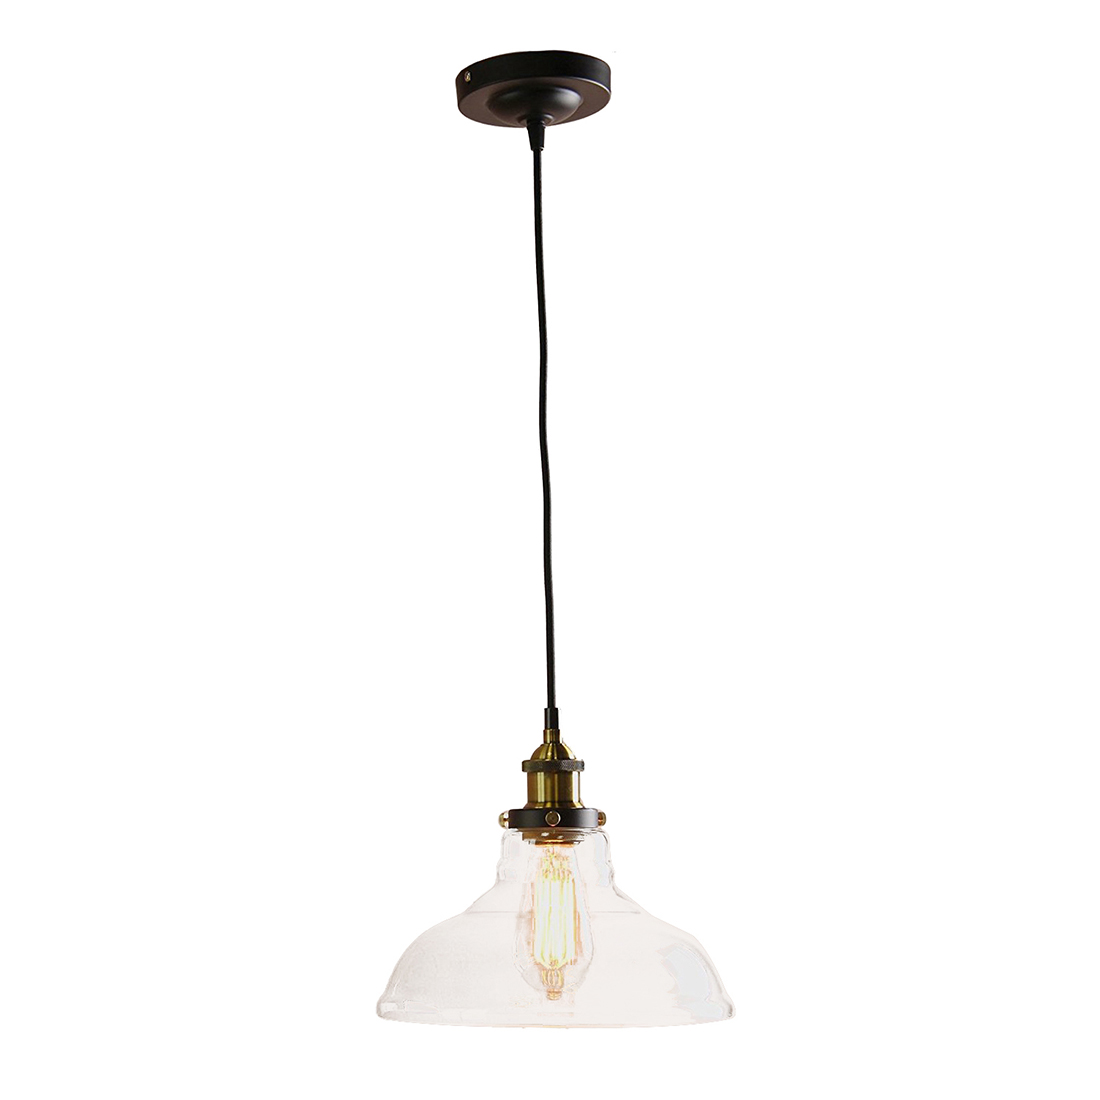 Vintage Industrial 1 Light Iron Body Glass Shade Loft Coffee Bar Kitchen cover Chandeliers Hanging Pendant Lamp Light new loft vintage iron pendant light industrial lighting glass guard design bar cafe restaurant cage pendant lamp hanging lights